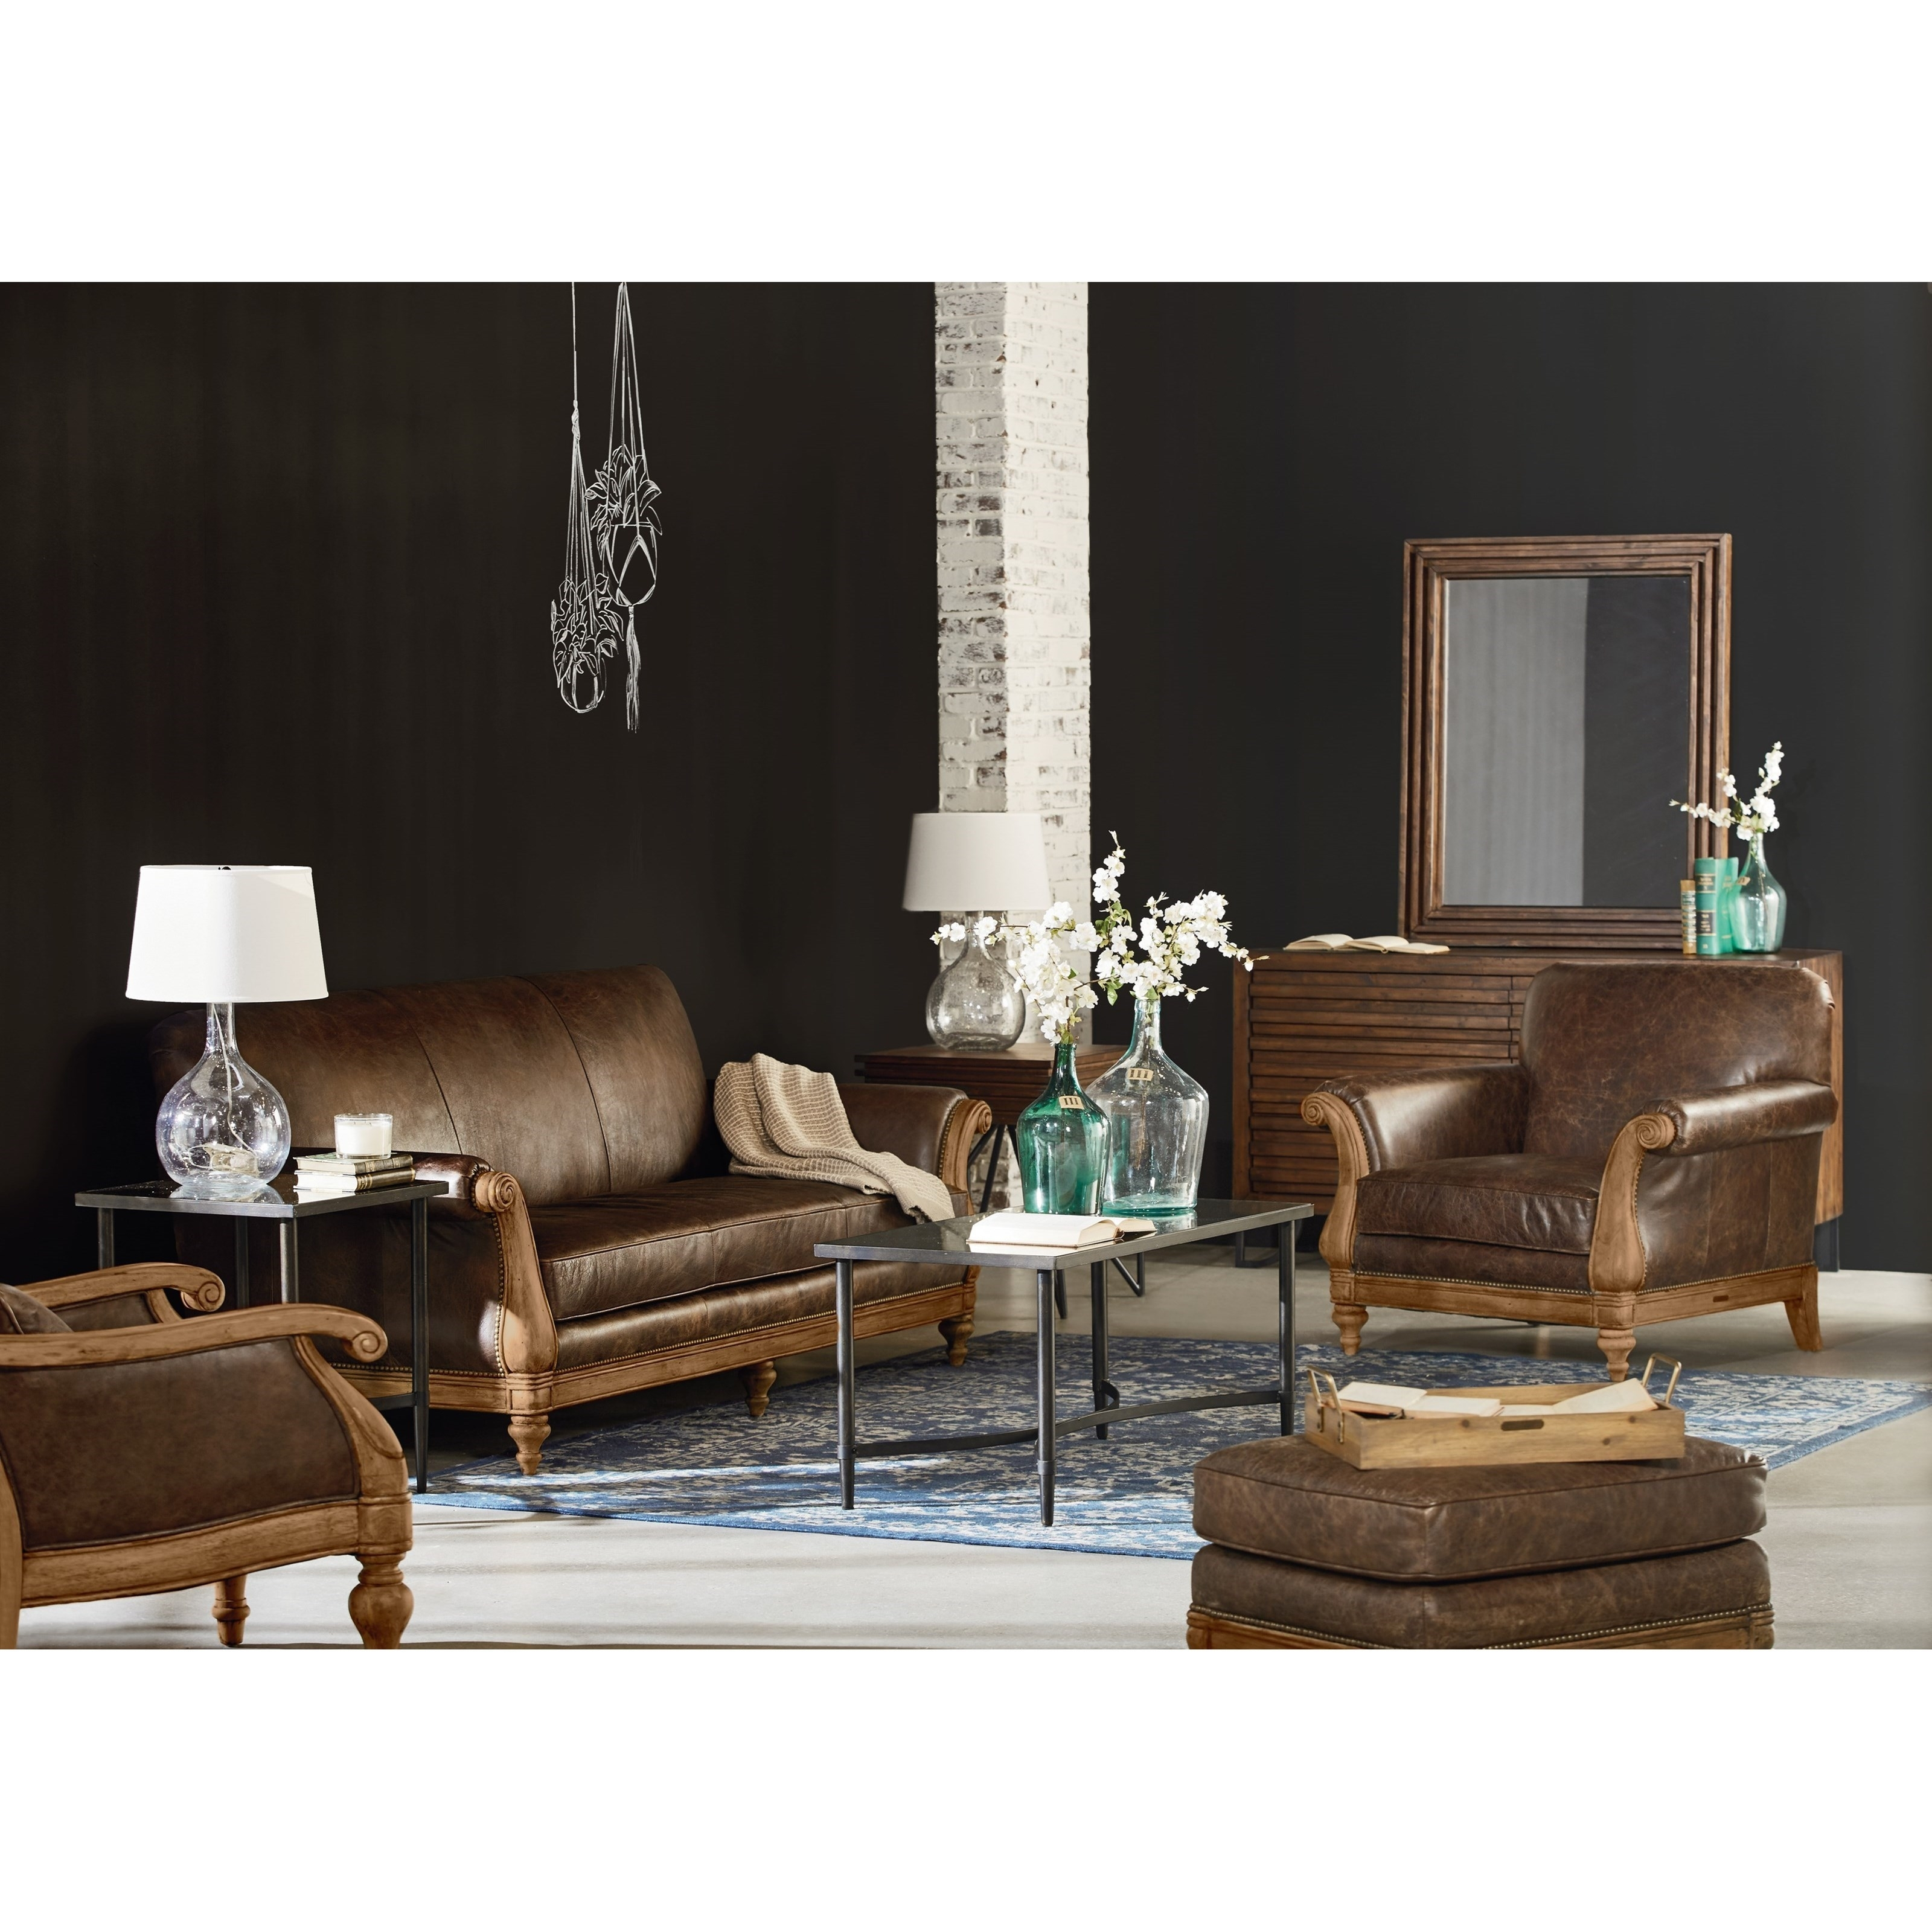 Magnolia Furniture Leather Sofa | Baci Living Room Regarding Magnolia Home Homestead 4 Piece Sectionals By Joanna Gaines (Image 11 of 25)